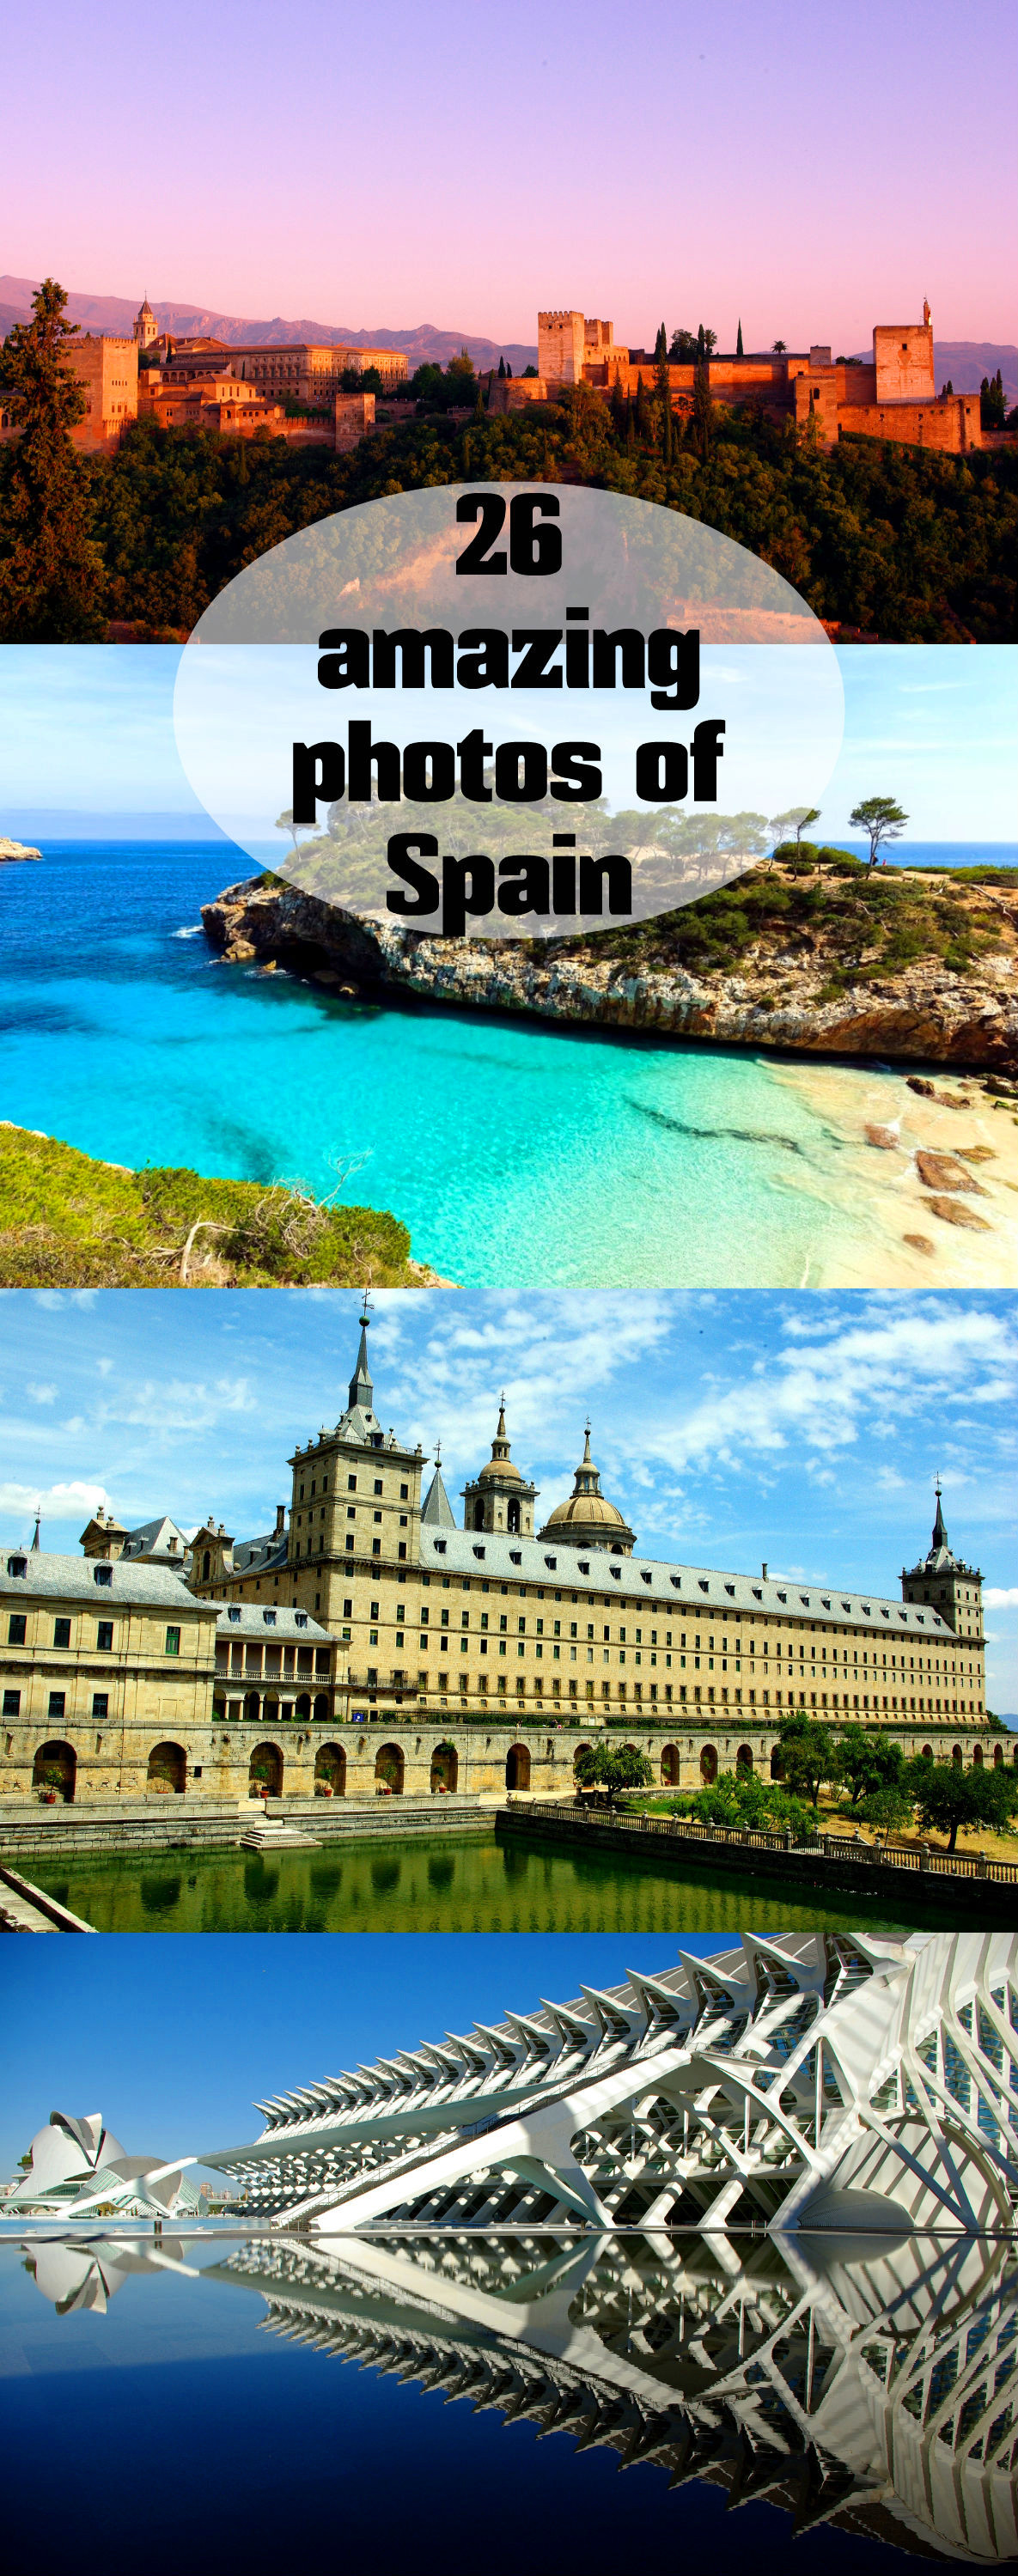 26 amazing photos of Spain. Get inspired! - Stingy Nomads